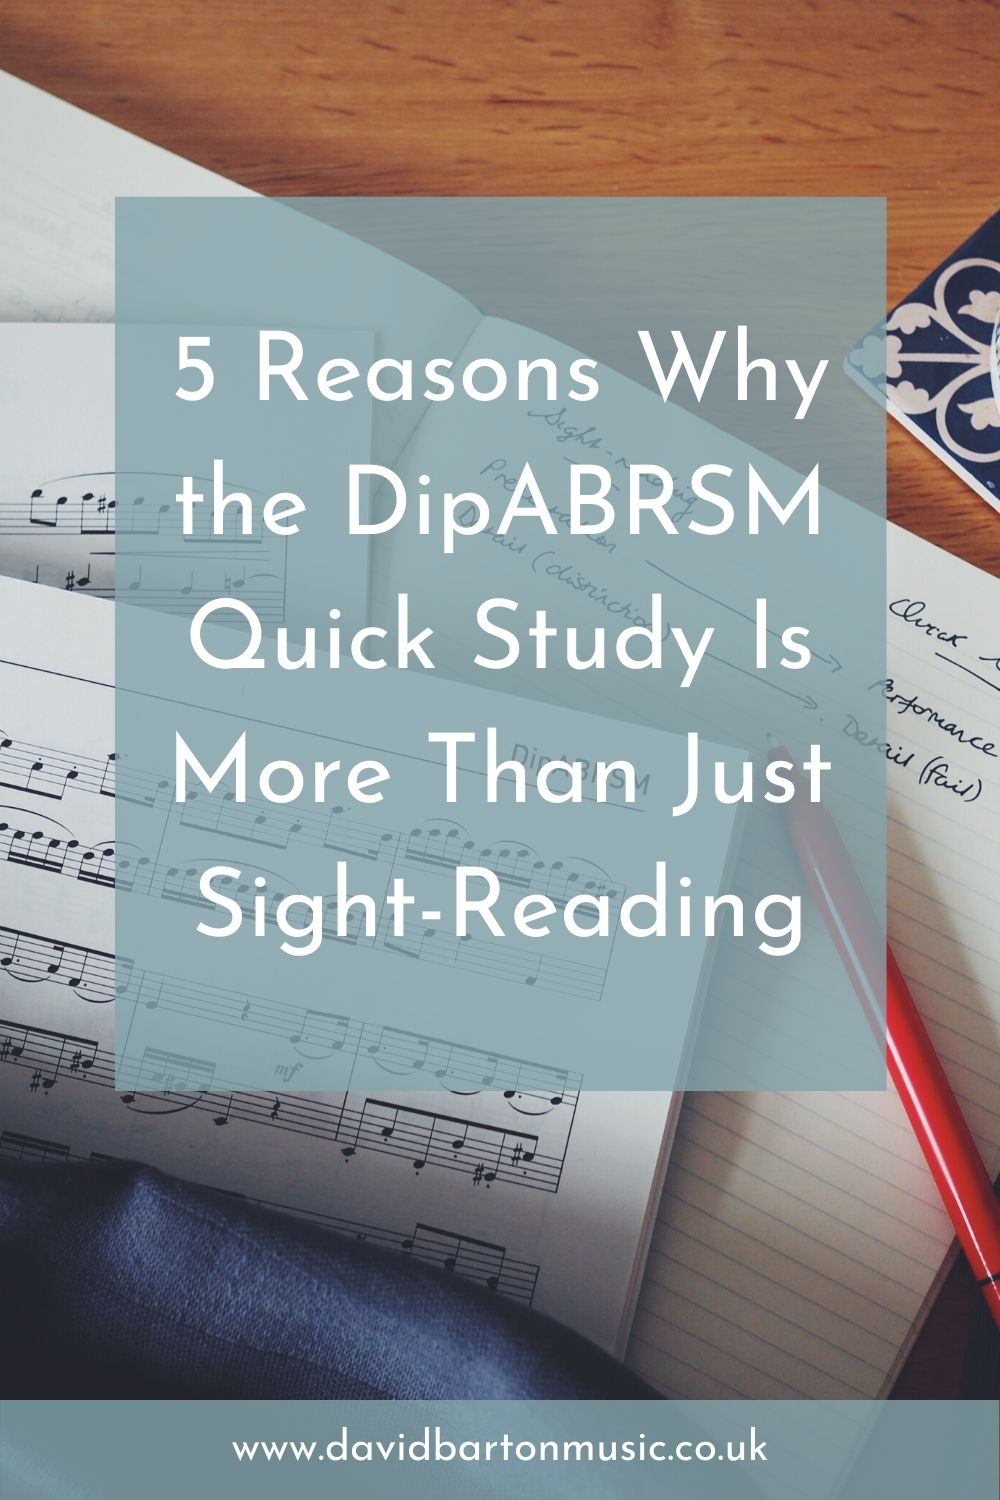 5 Reasons Why the DipABRSM Quick Study Is More Than Just Sight-Reading - Pinterest Graphic